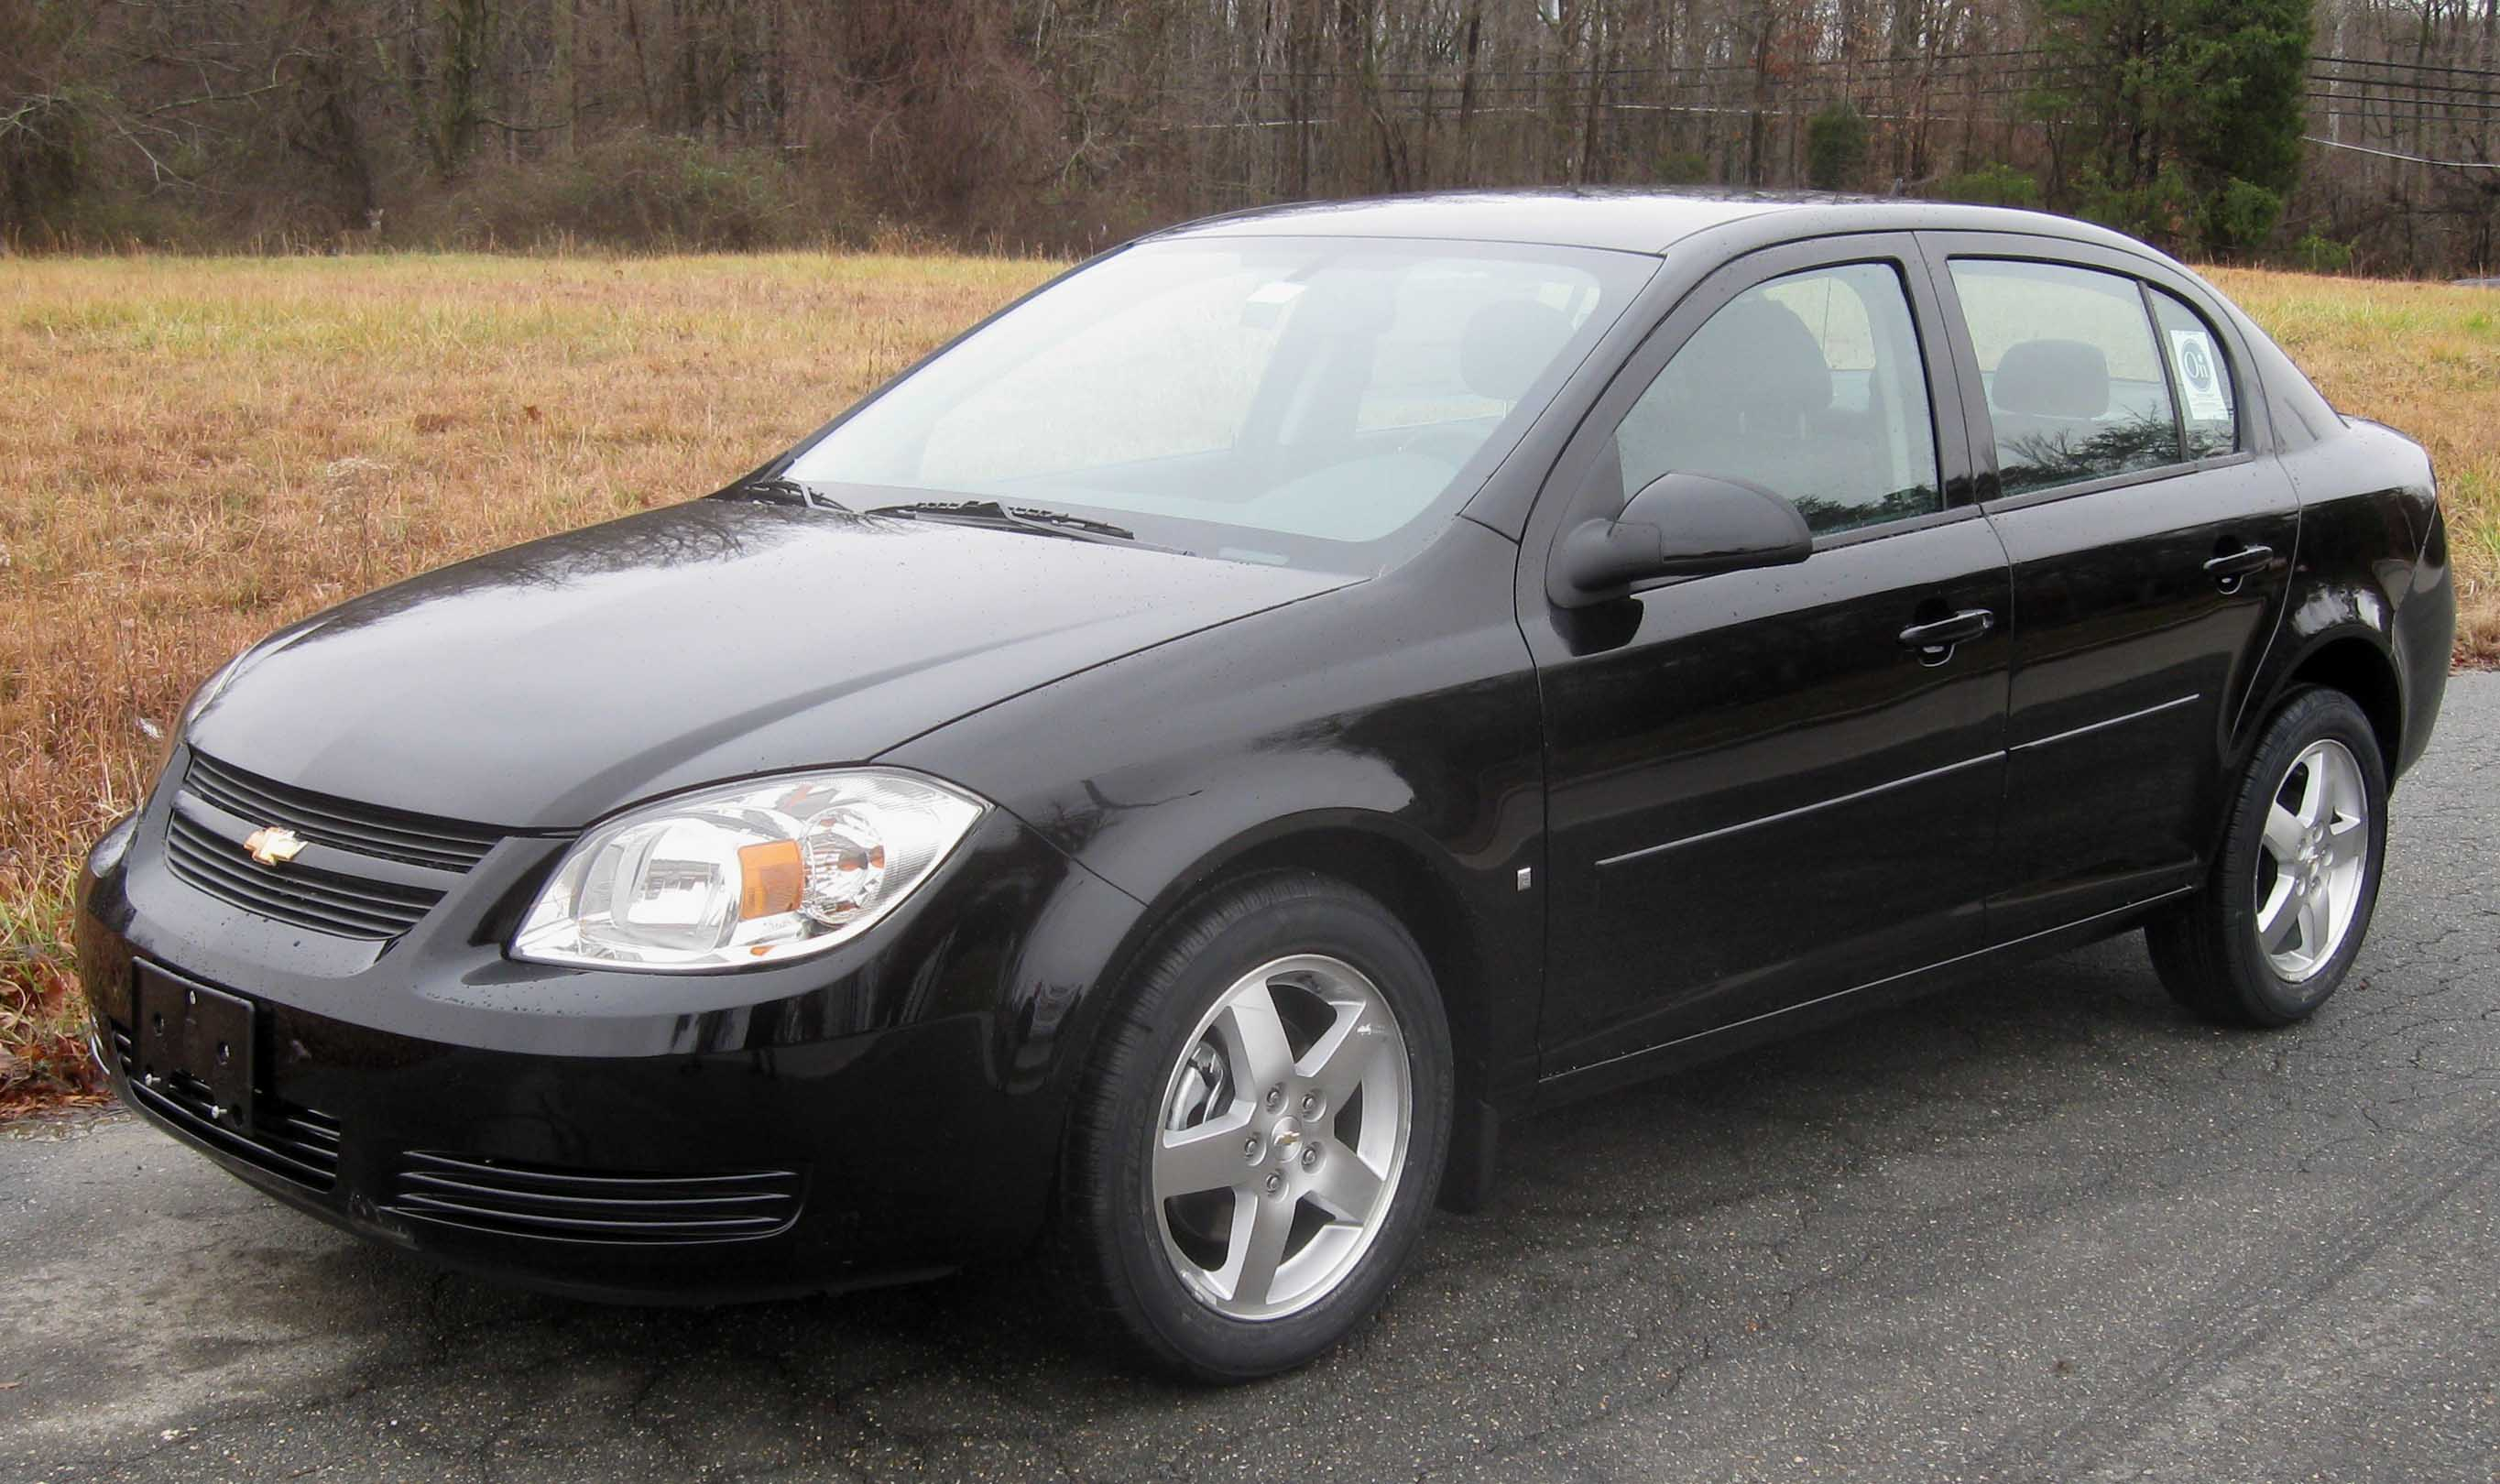 File:2009 Chevrolet Cobalt LT sedan.jpg